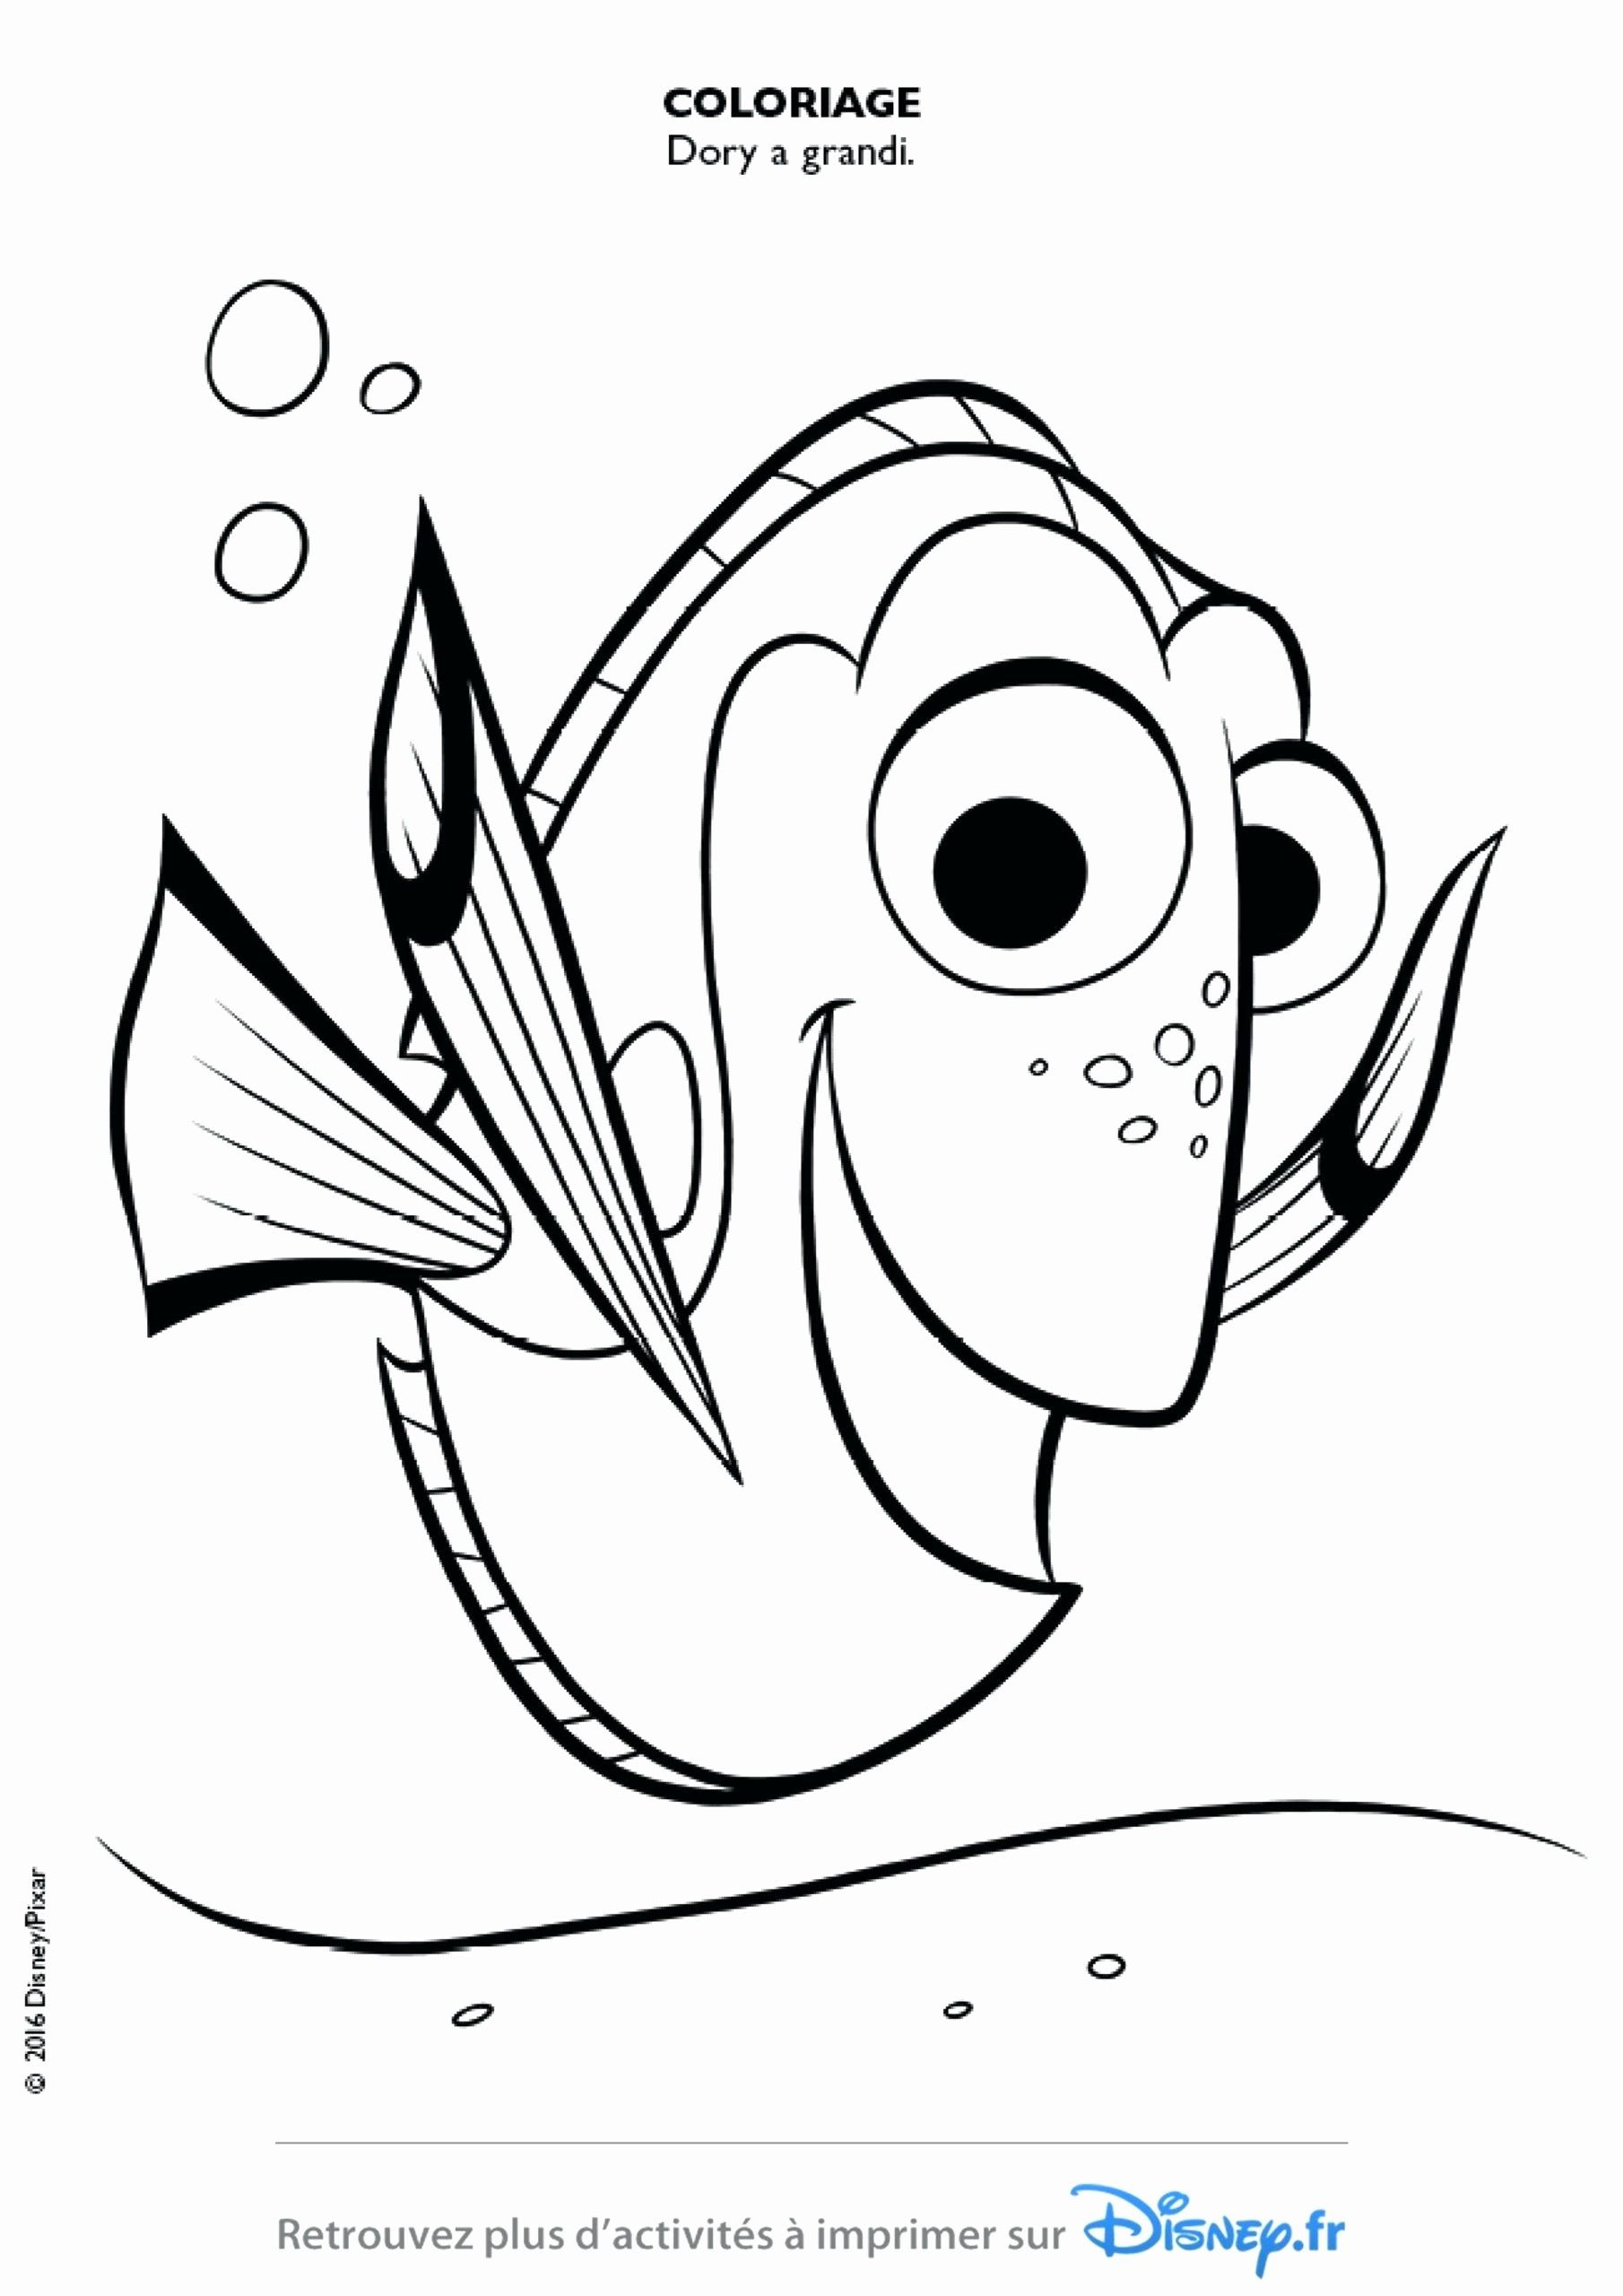 Finding Dory Coloring Book Fresh Top 28 Top Notch Ejykymg Finding Nemo Coloring Pages Do Nemo Coloring Pages Cartoon Coloring Pages Finding Nemo Coloring Pages